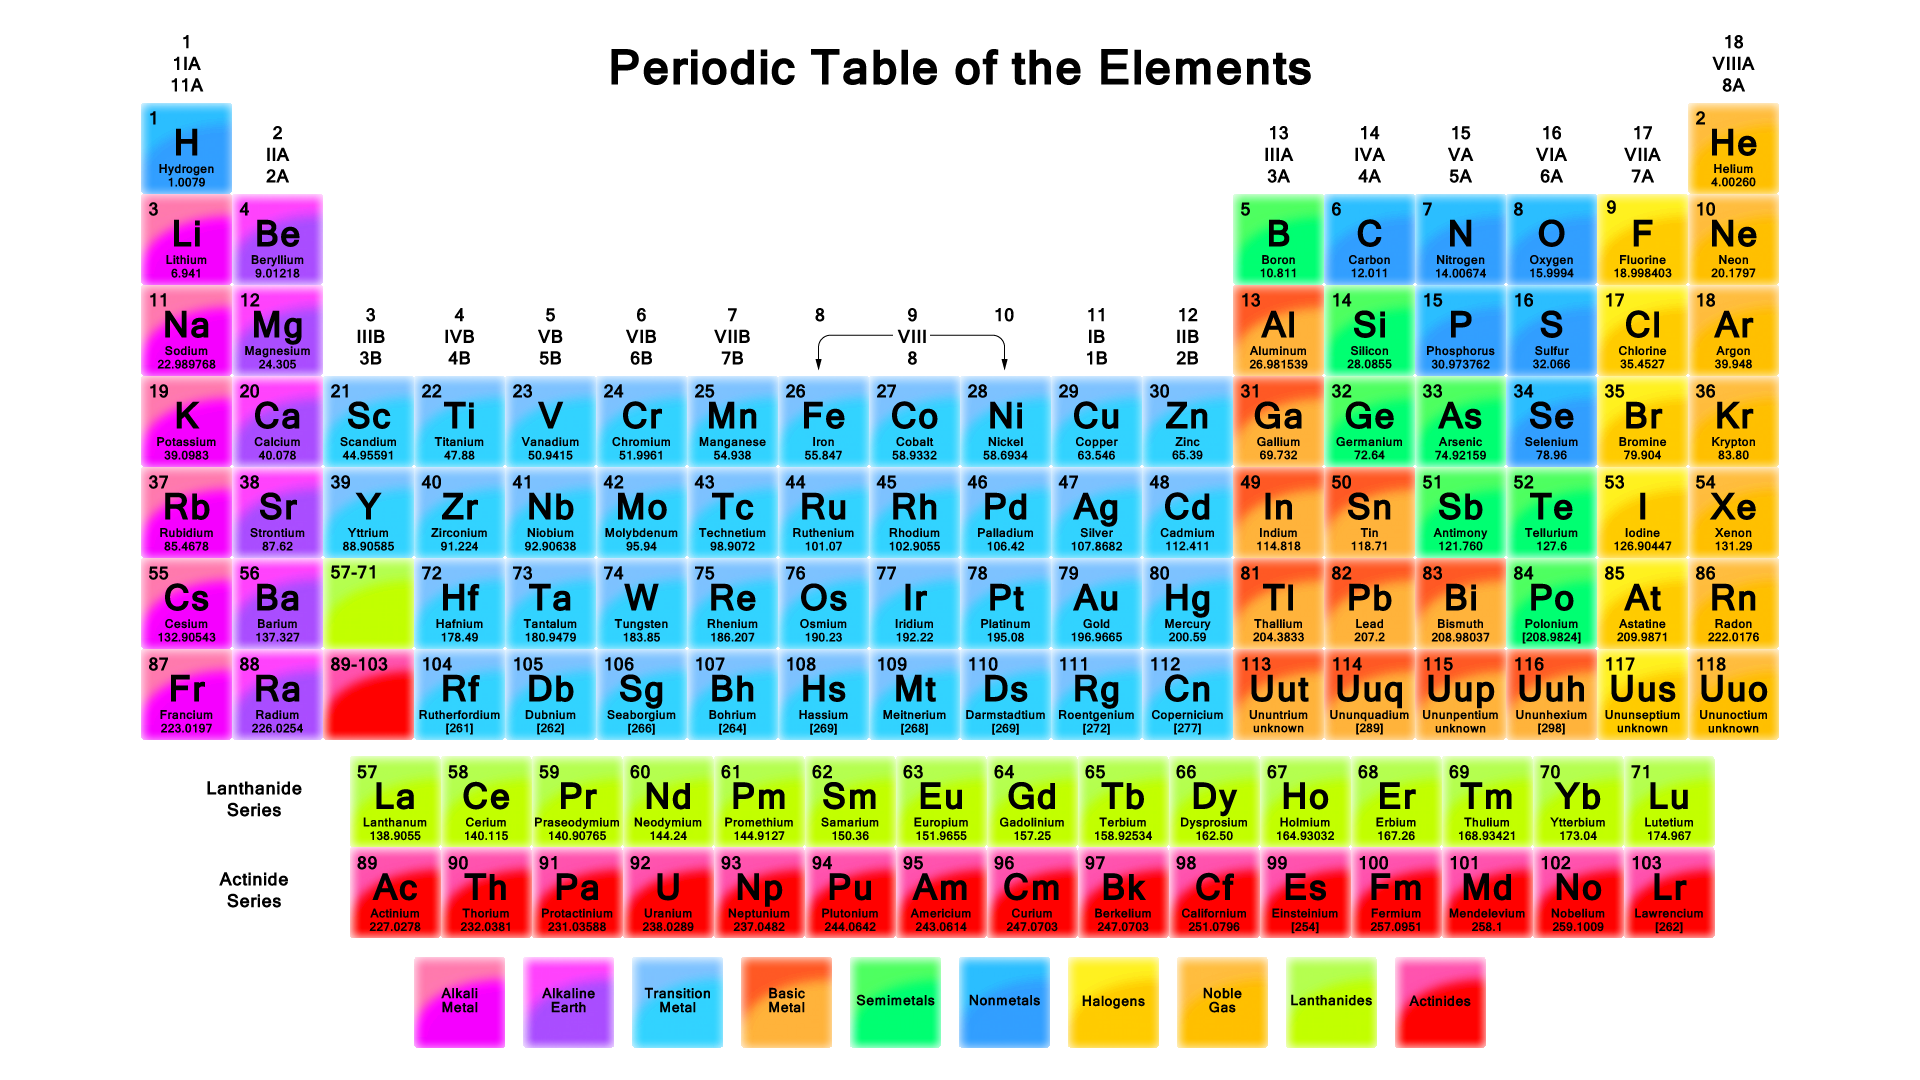 What are rare earth metals and why are they important norbert haupt rare earths periodictable urtaz